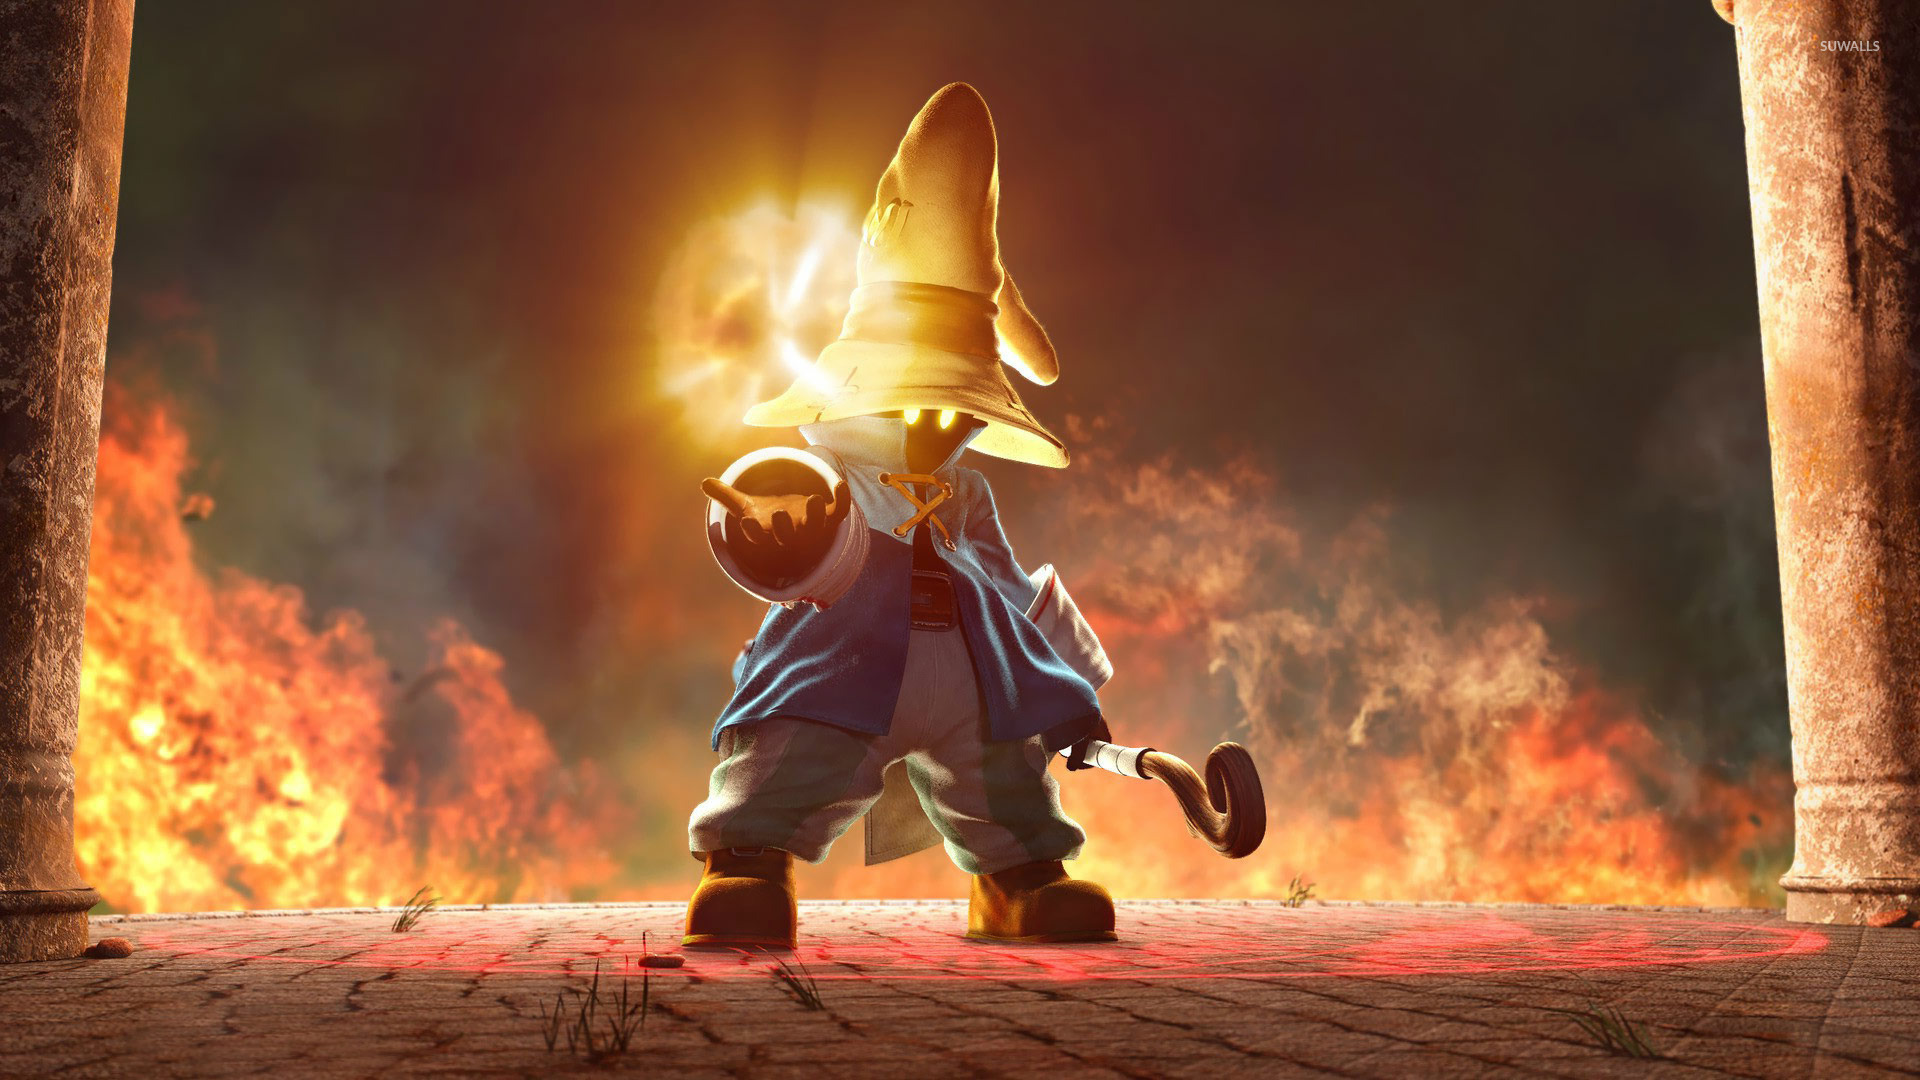 1920x1080 wizard wallpapers - photo #4